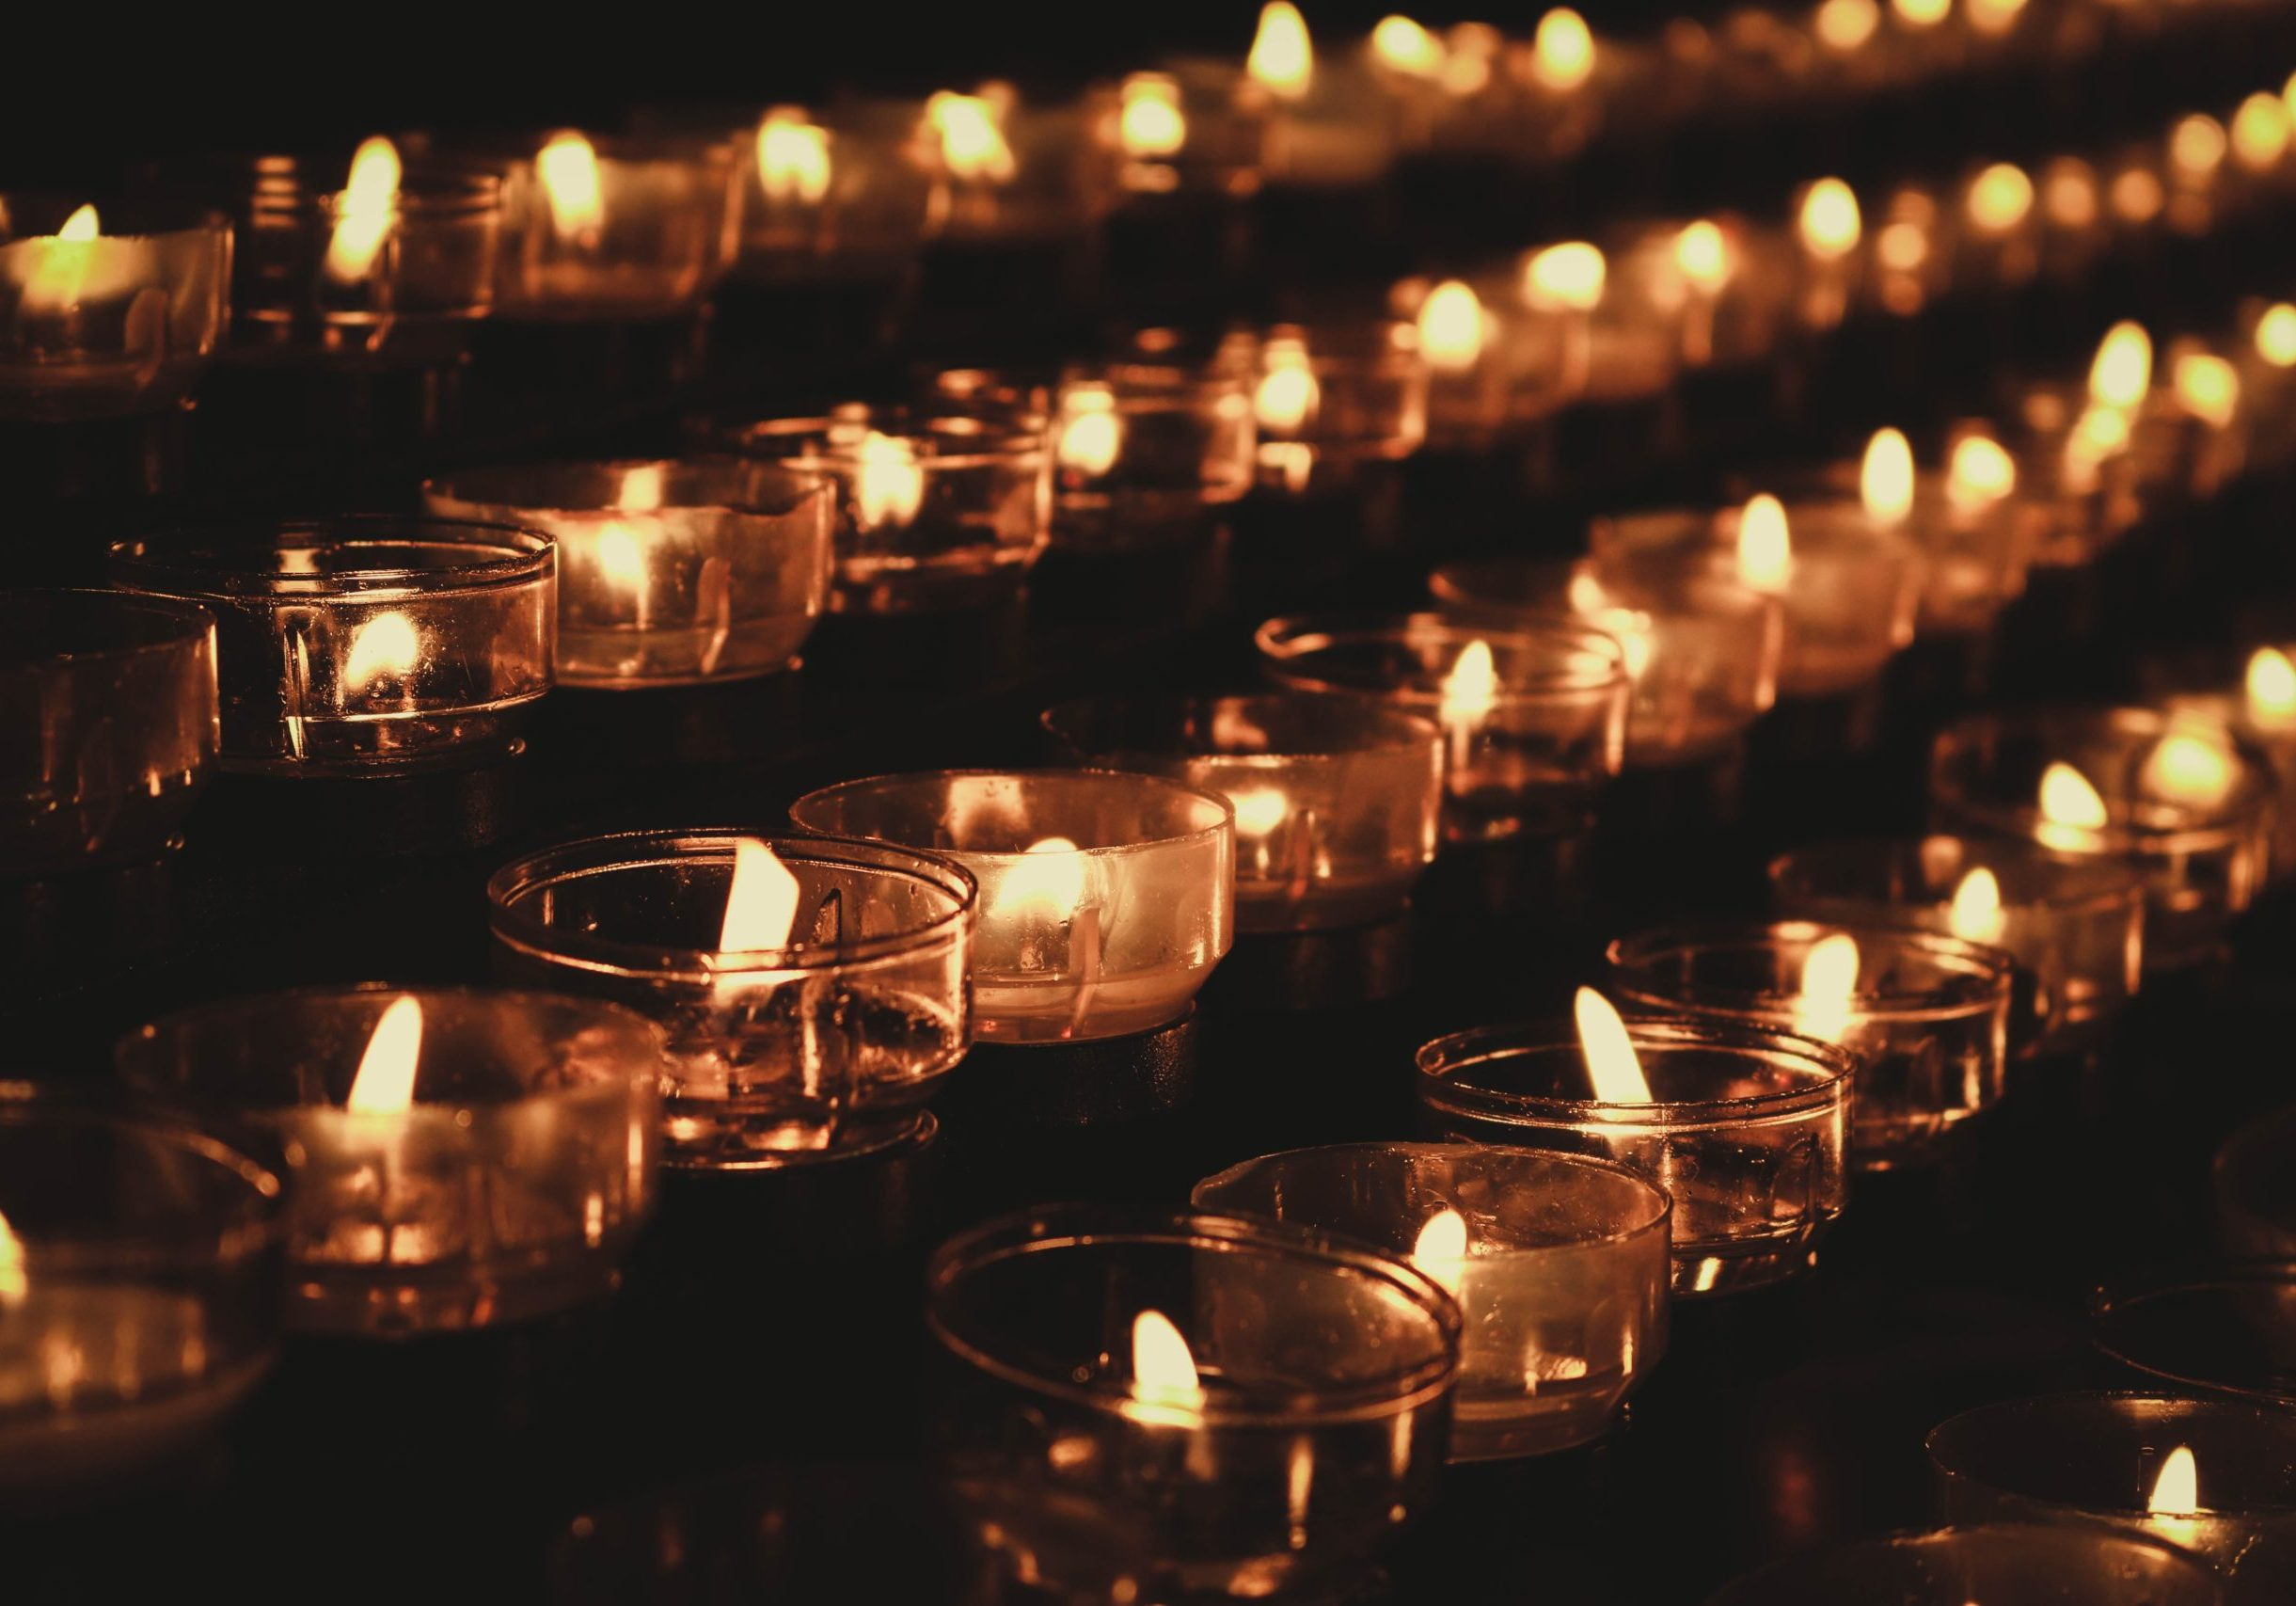 Candles pic